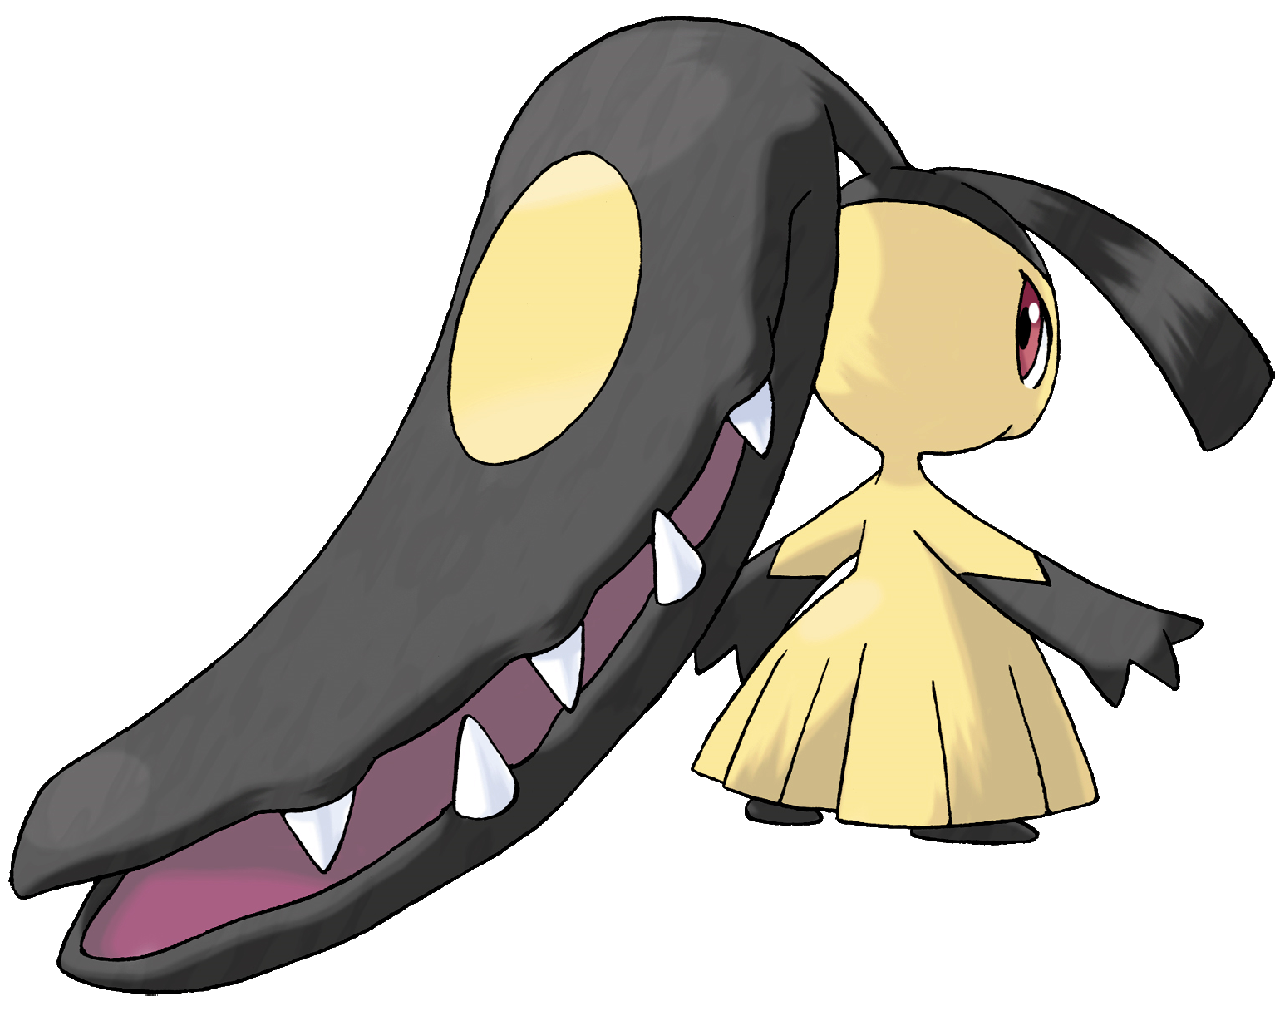 20130812151020!303Mawile.png